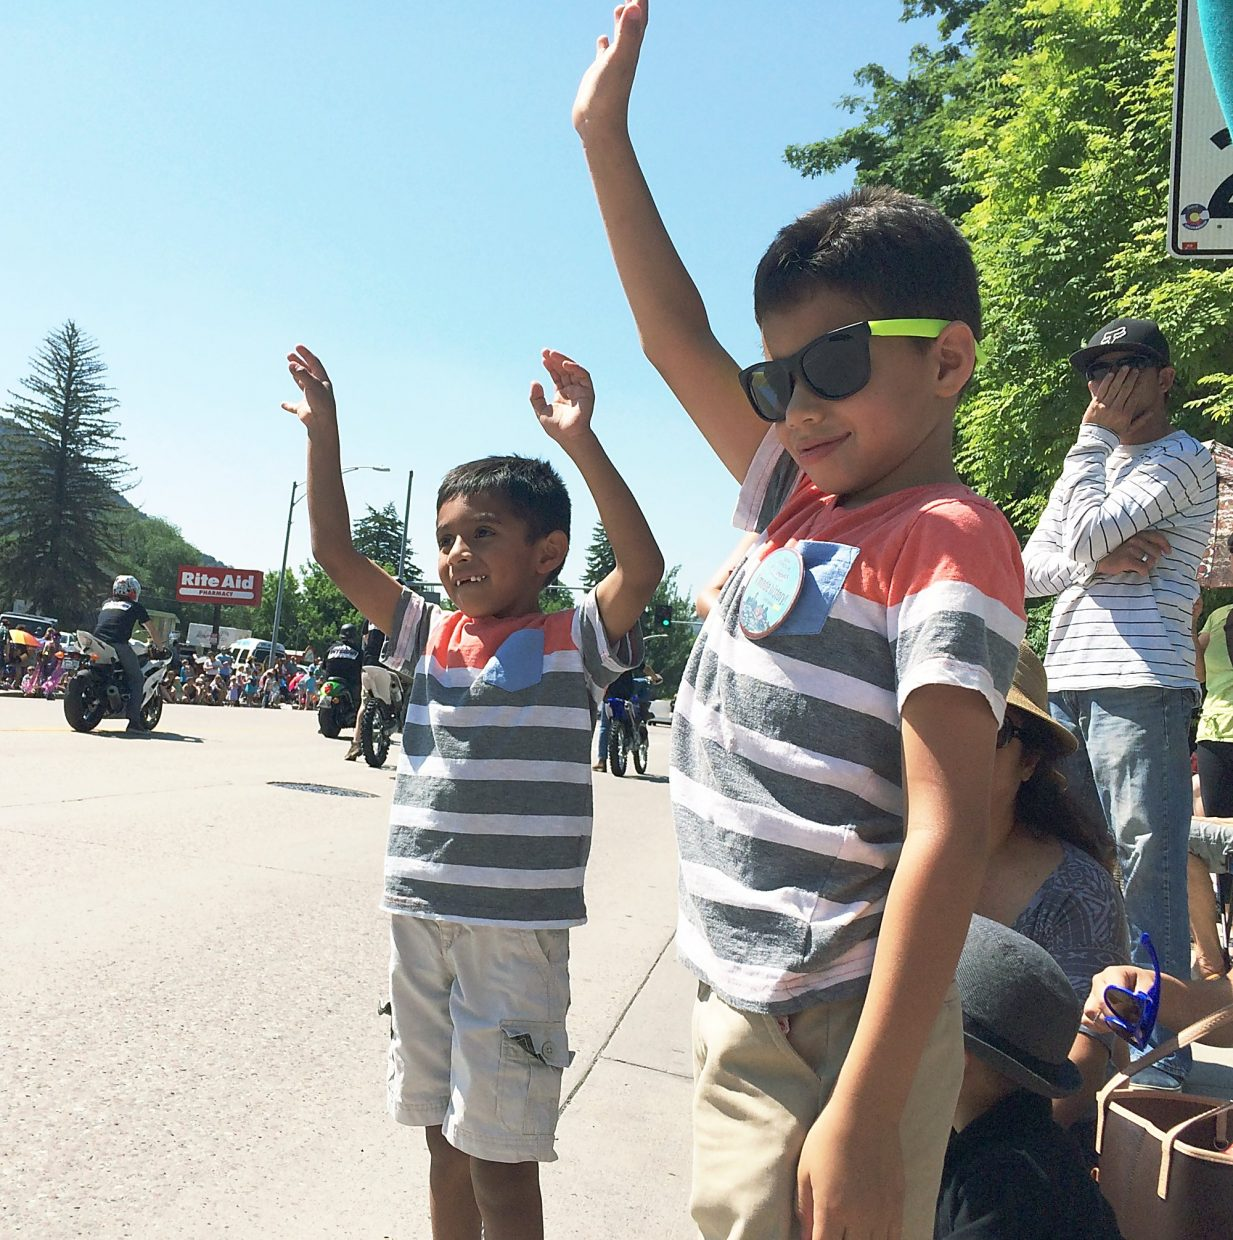 The Fuentes brothers, Ian in the yellow-framed glasses and Hillel in the blue frames, wave to try to get the attention of parade participants throwing candy at the 2015 Strawberry Days parade.